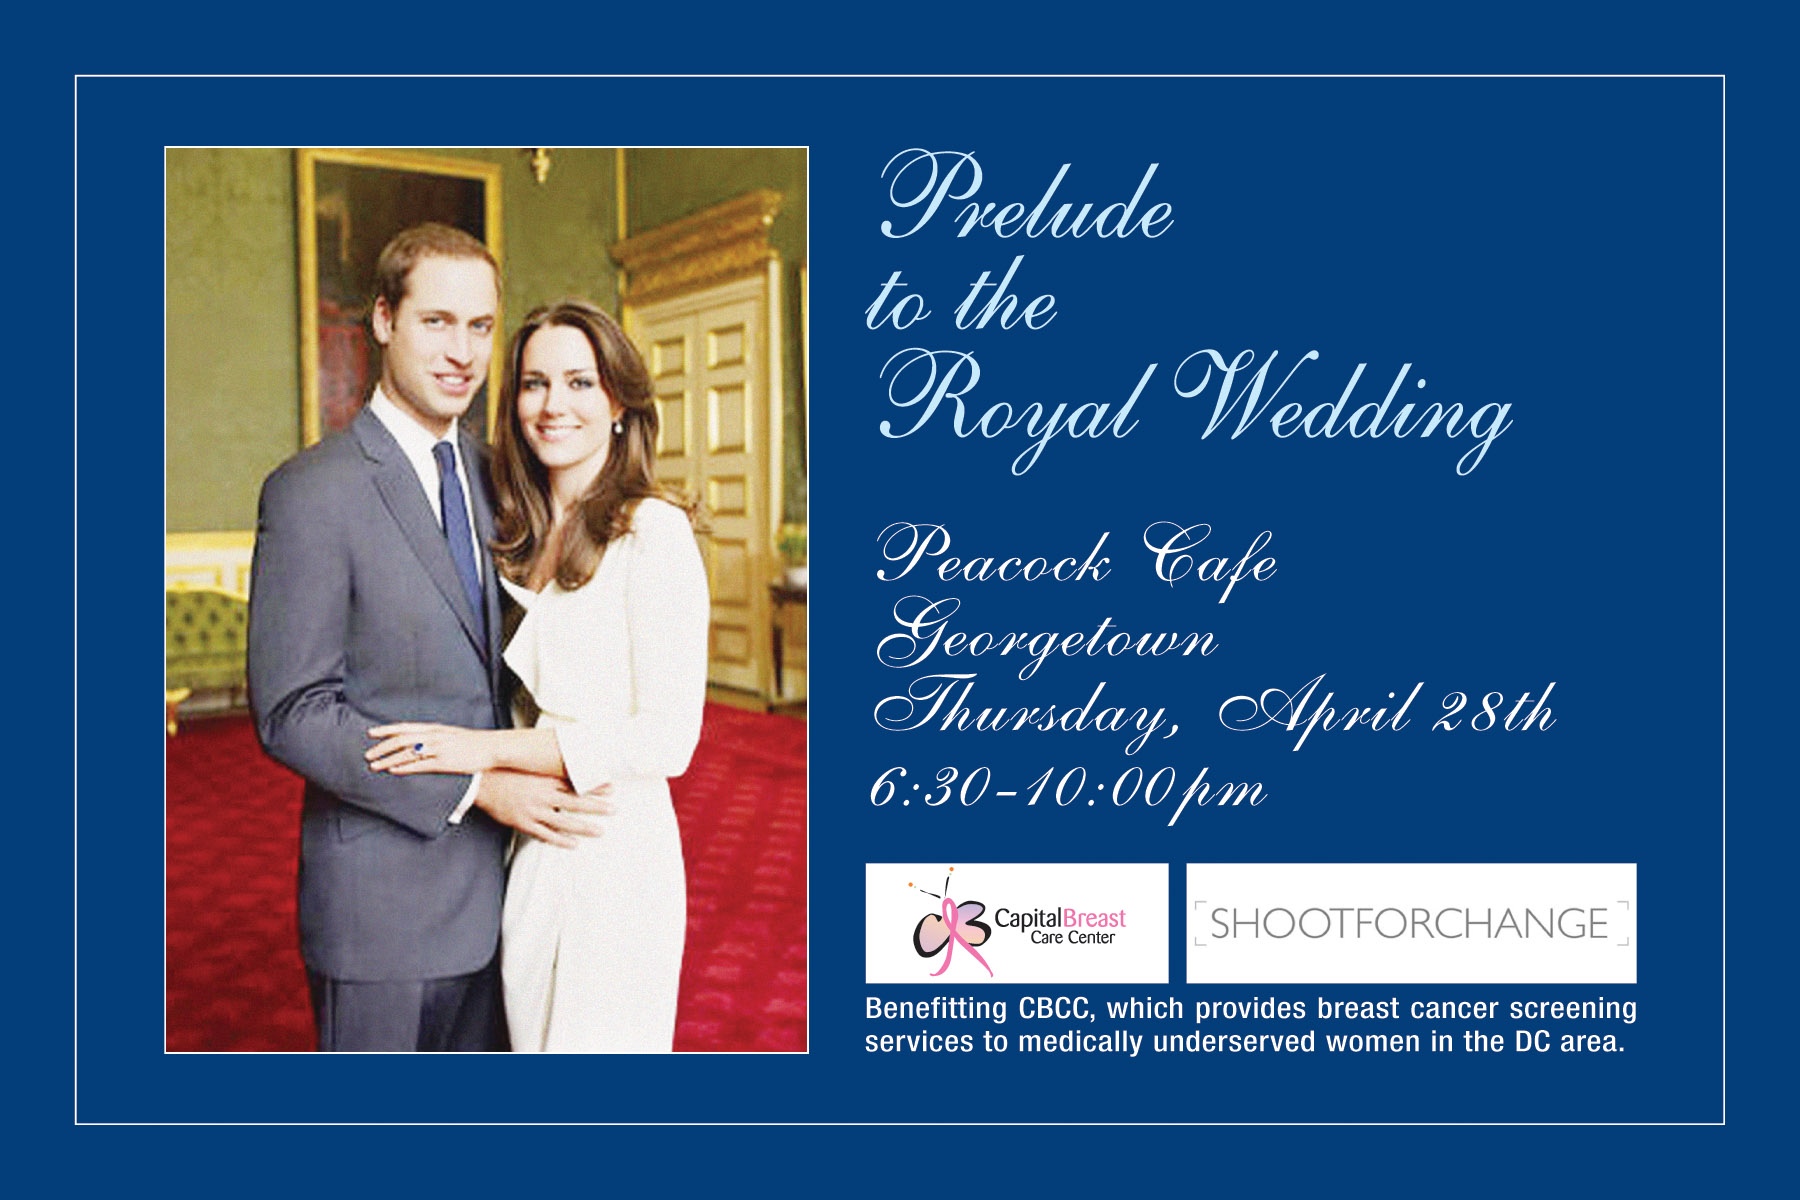 Royal Wedding Prelude to Benefit CBCC